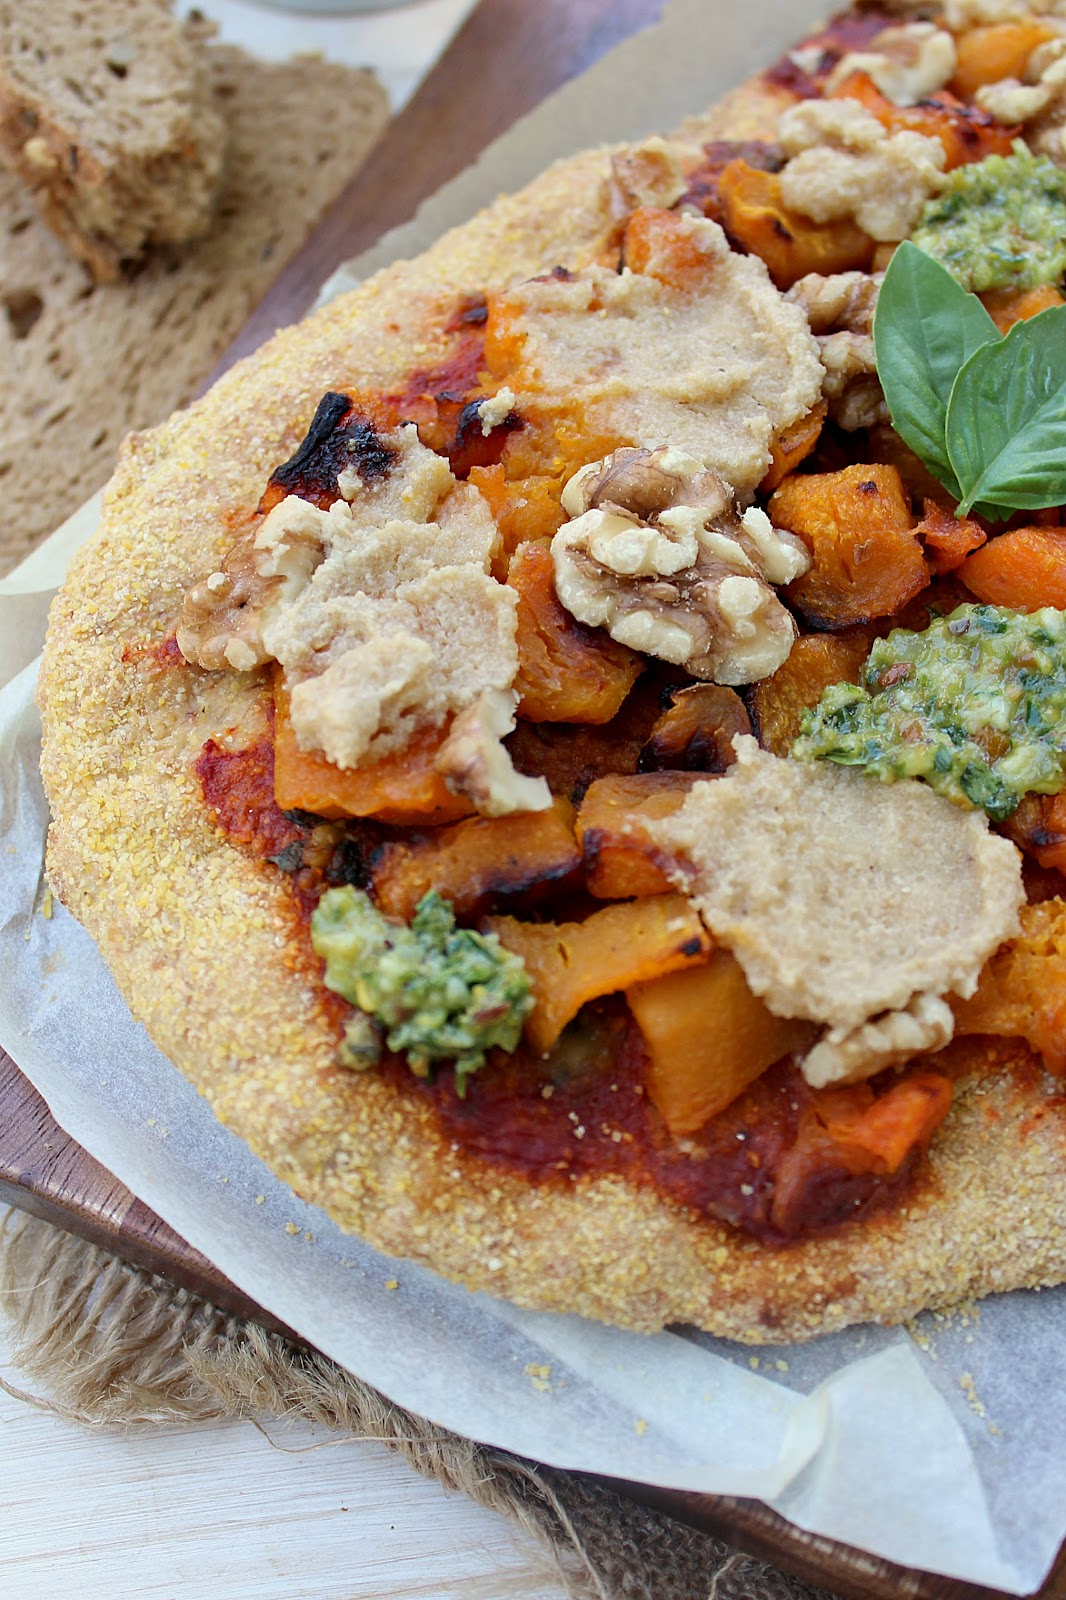 Vegan Butternut Squash, Pesto and Walnut Pizza with Garlic Cashew Cheese